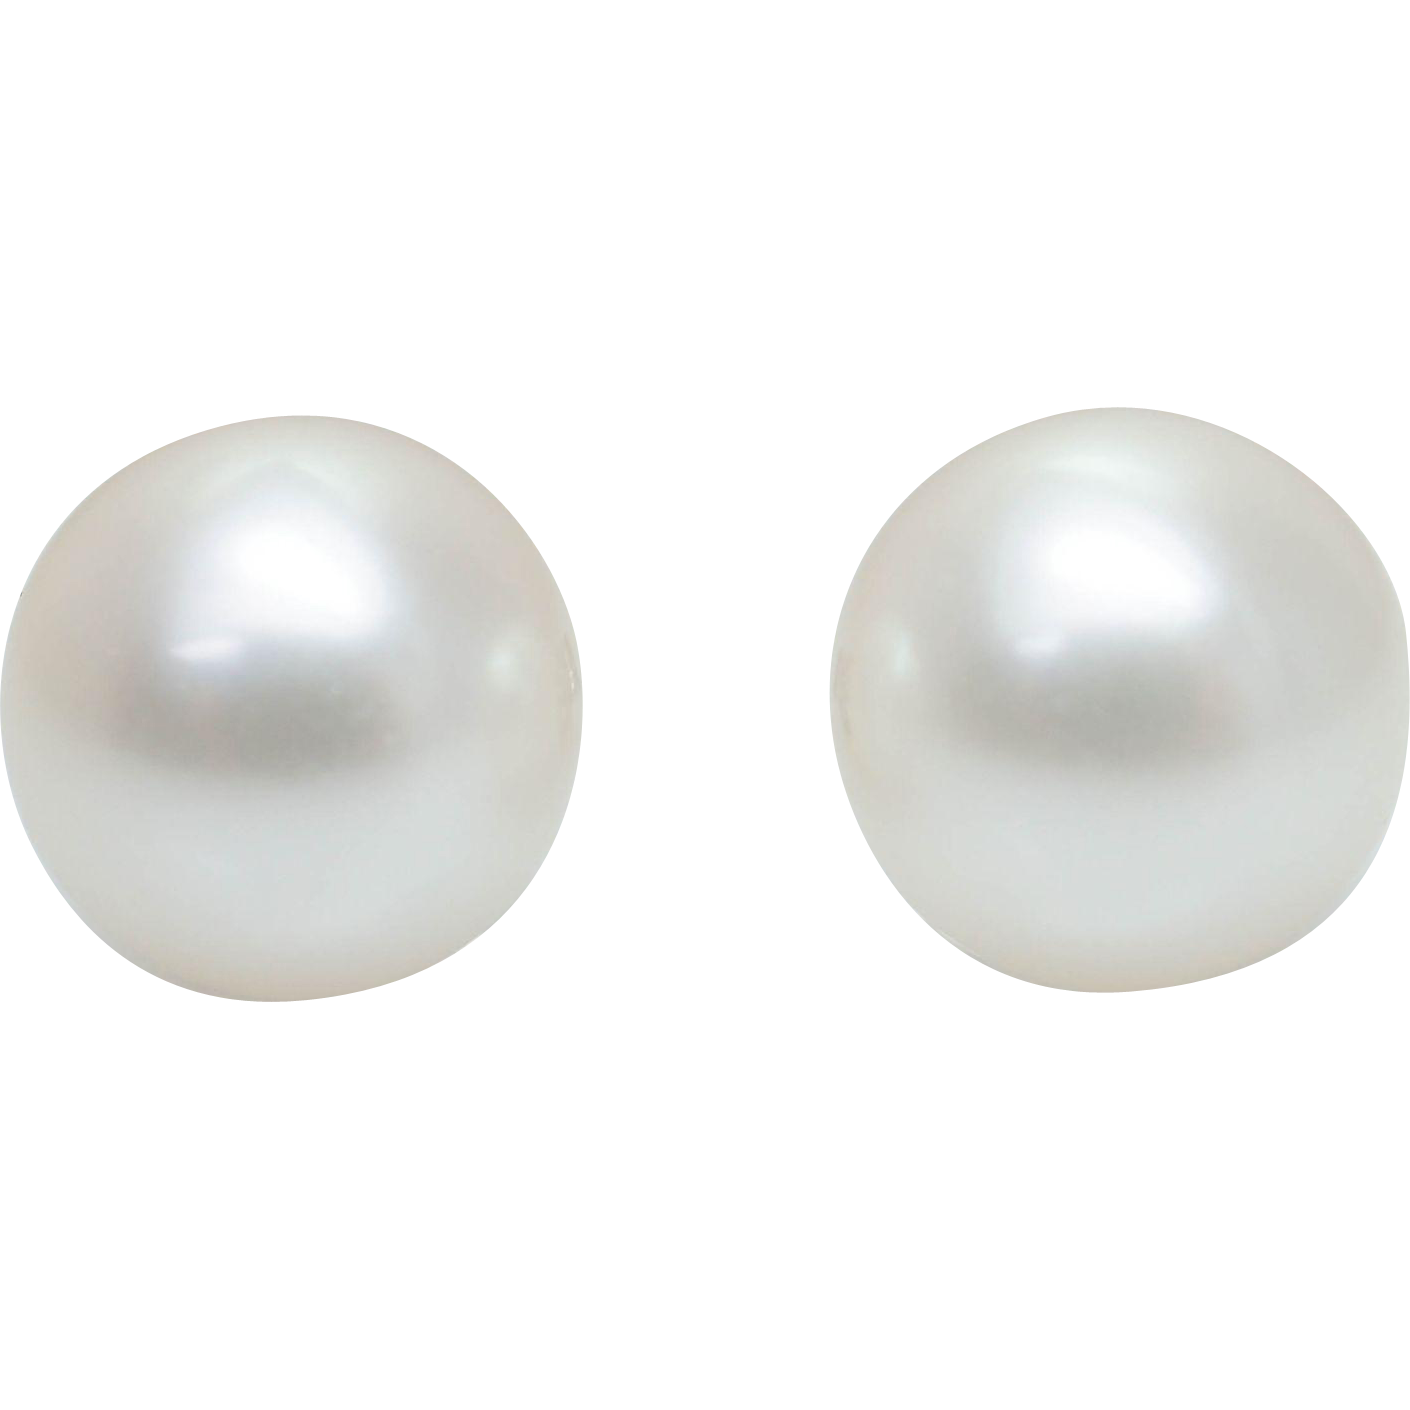 White pearl png. Pearls transparentpng image information